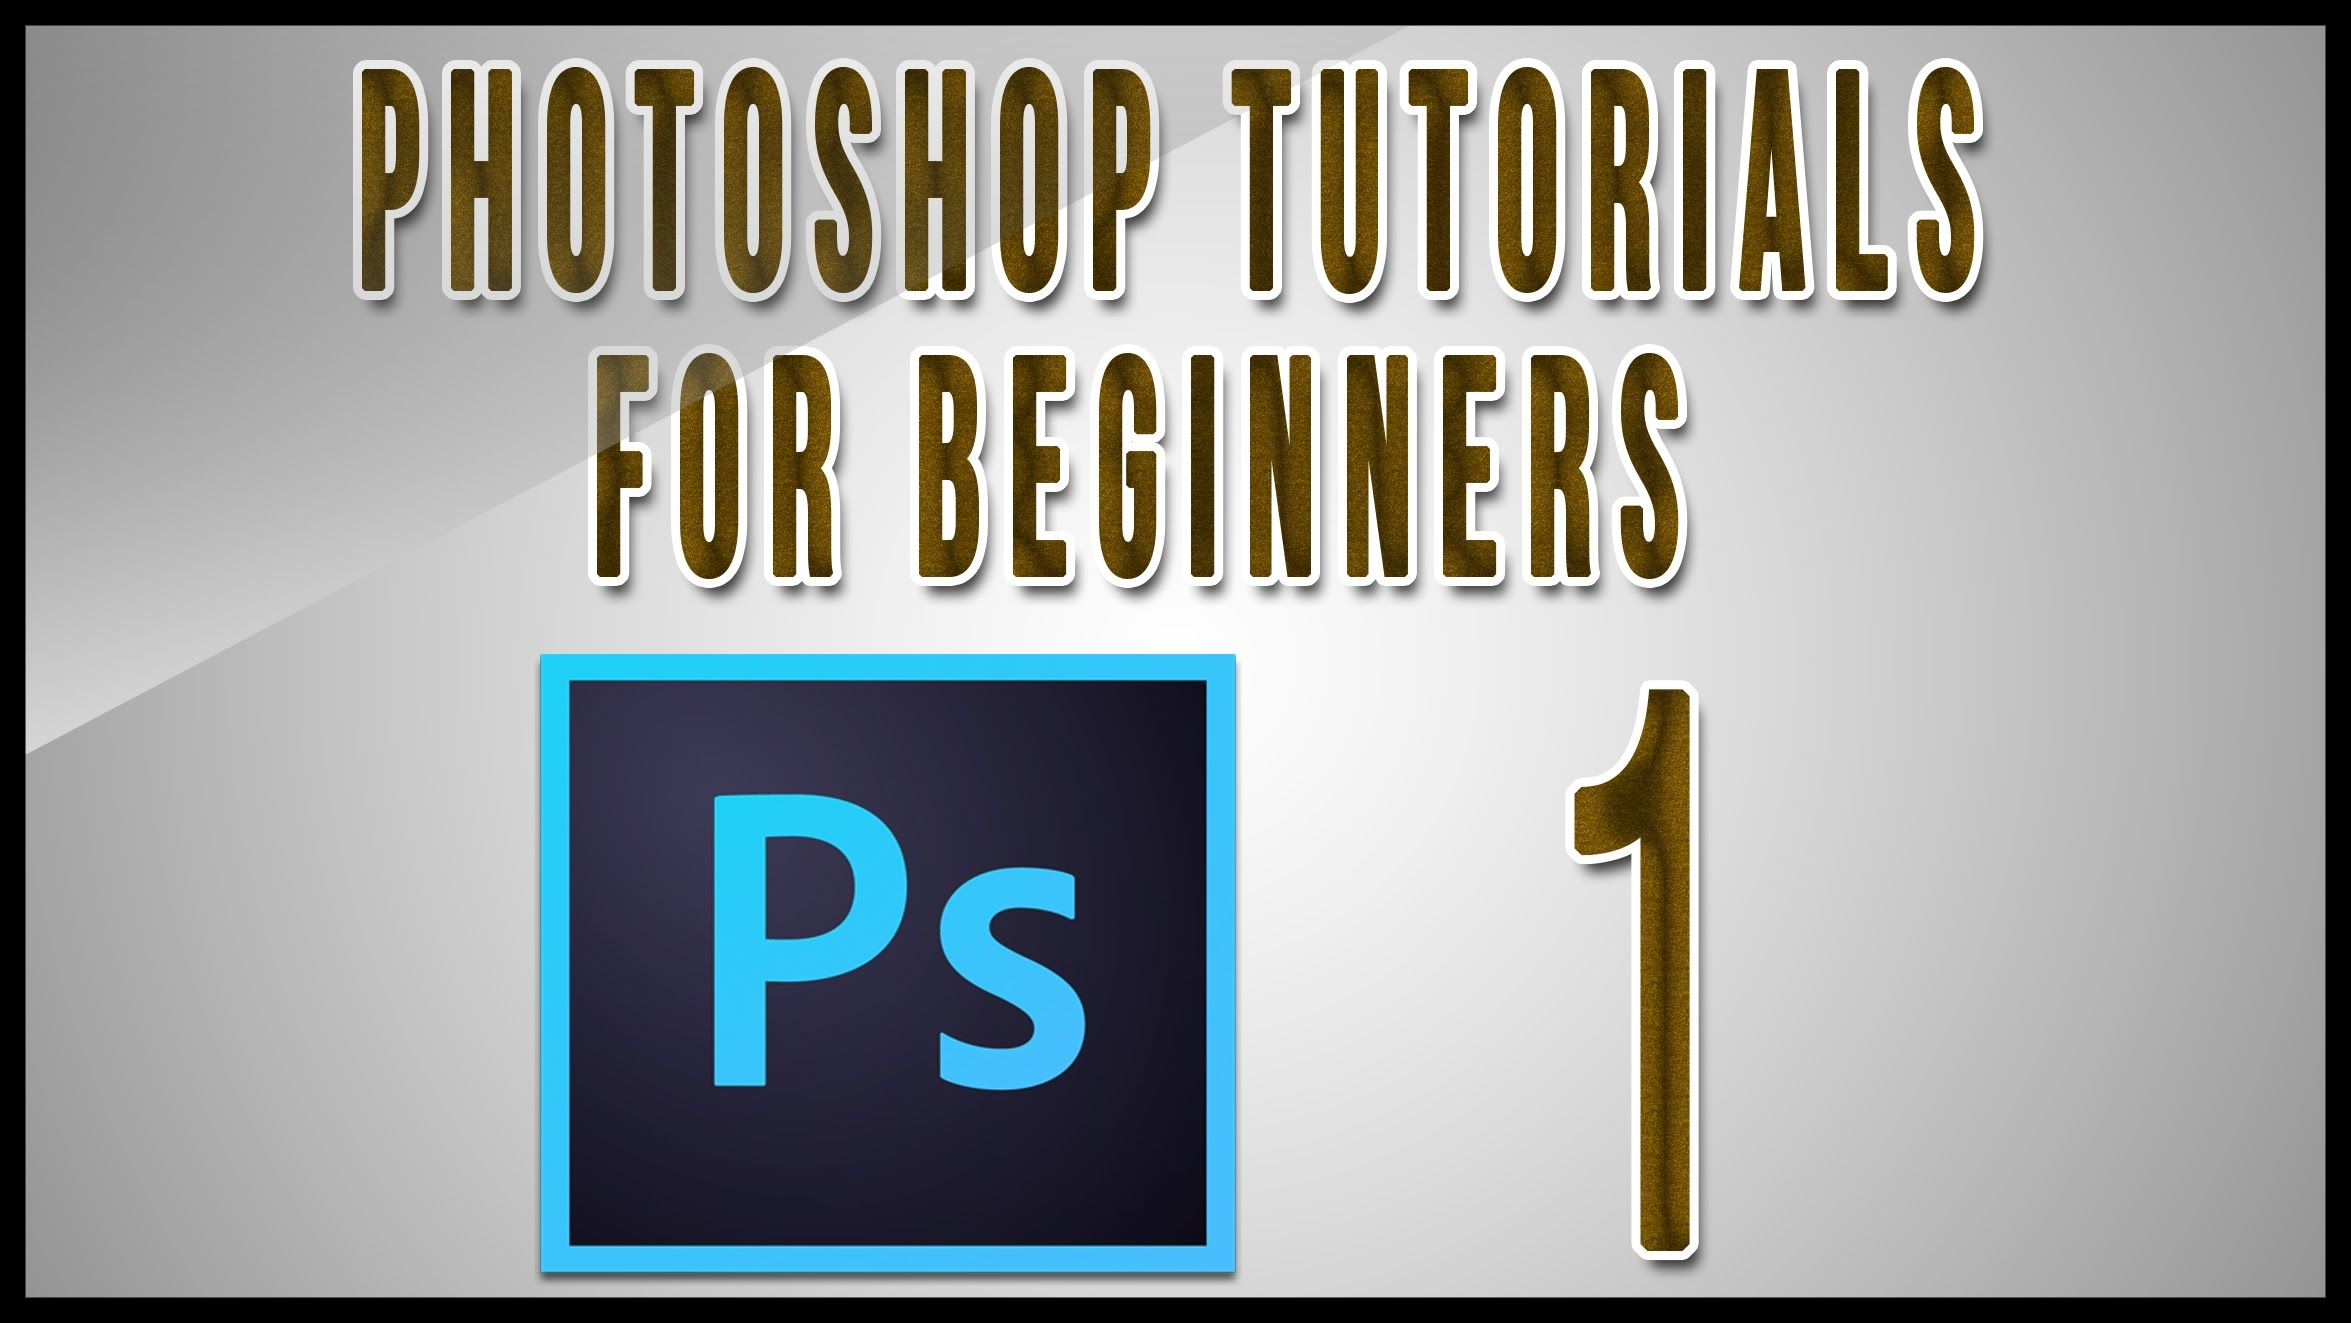 Pin by mccawi on photo lessons pinterest photoshop website adobe photoshop tutorial for beginners teaching the basics of photoshop 2017 new photoshop tutorial for beginners going over many important aspects when baditri Image collections